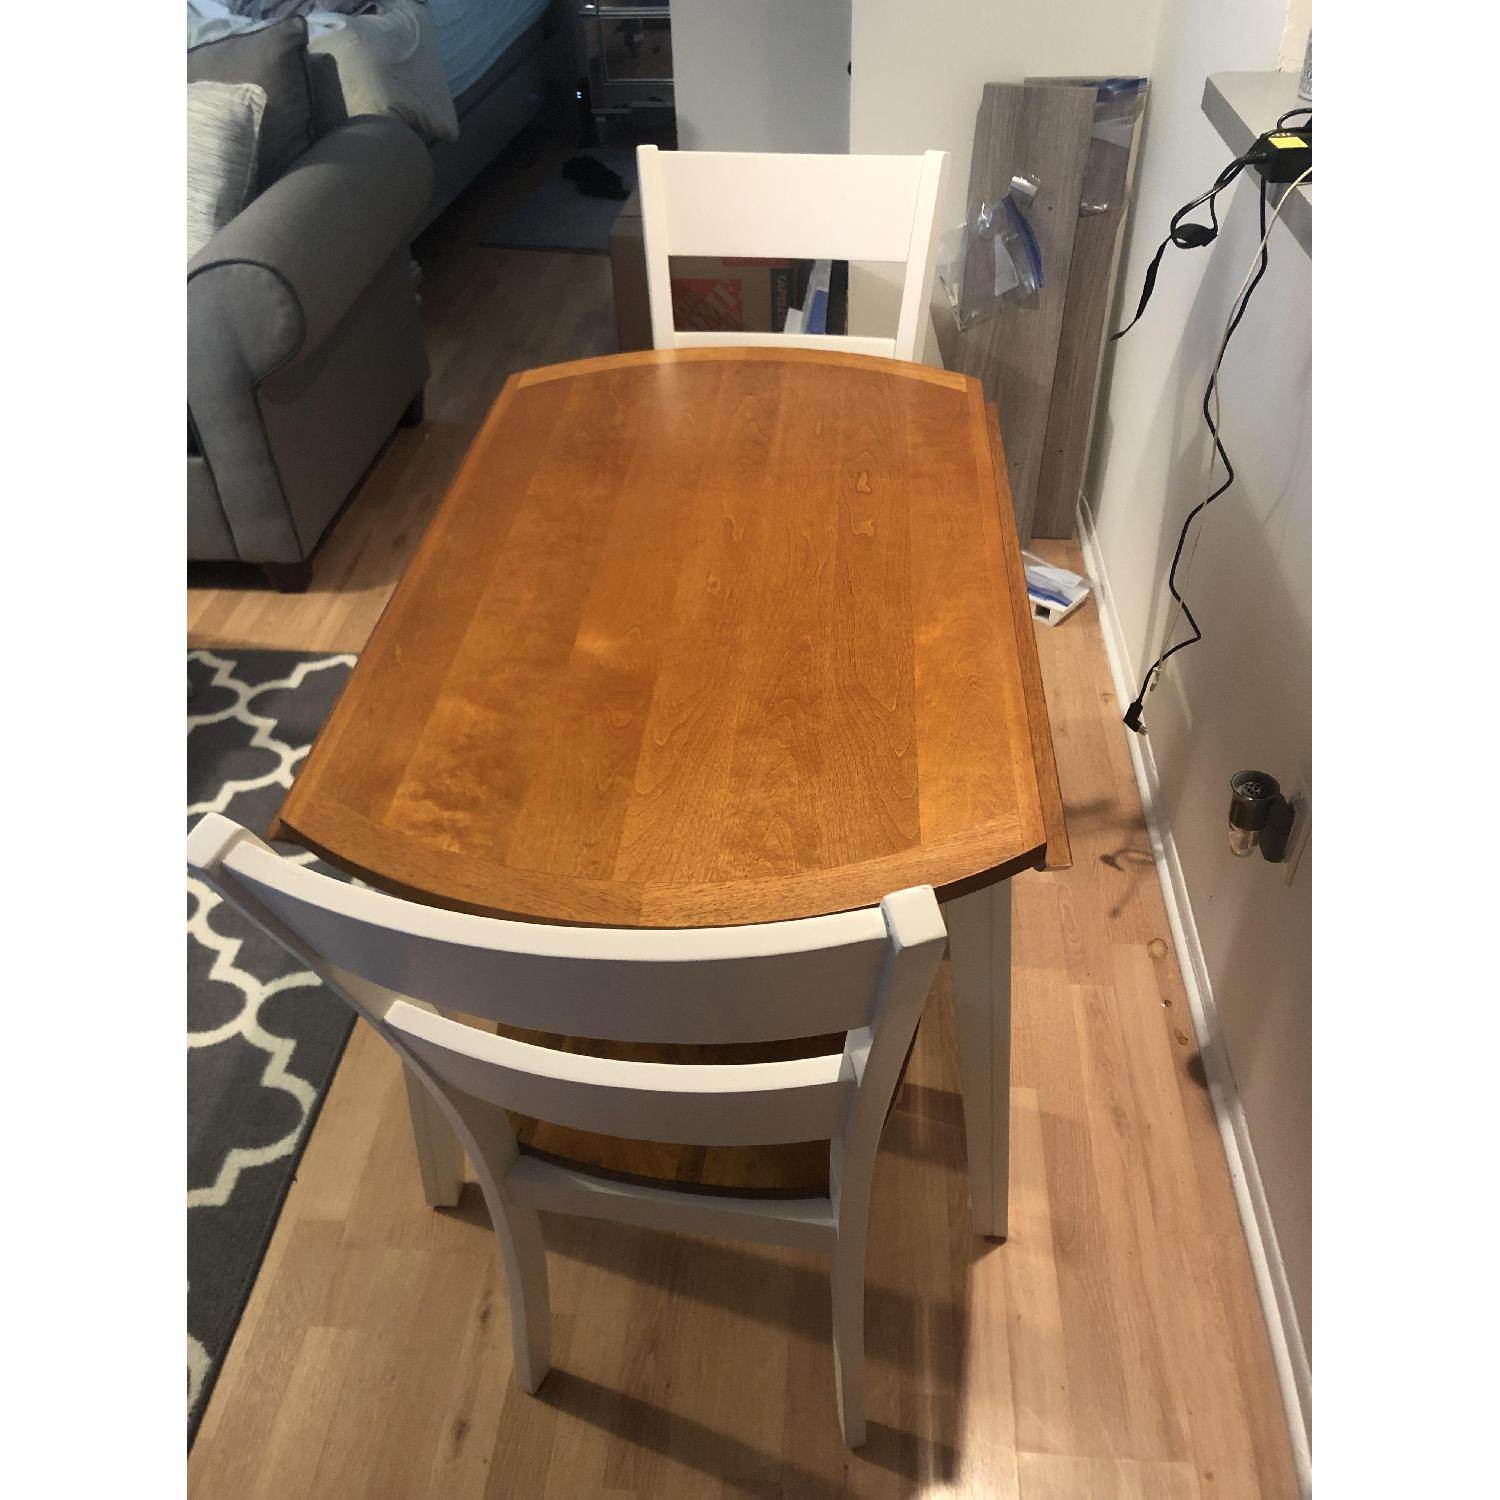 Bob's White & Oak Table w/ 2 Chairs-1